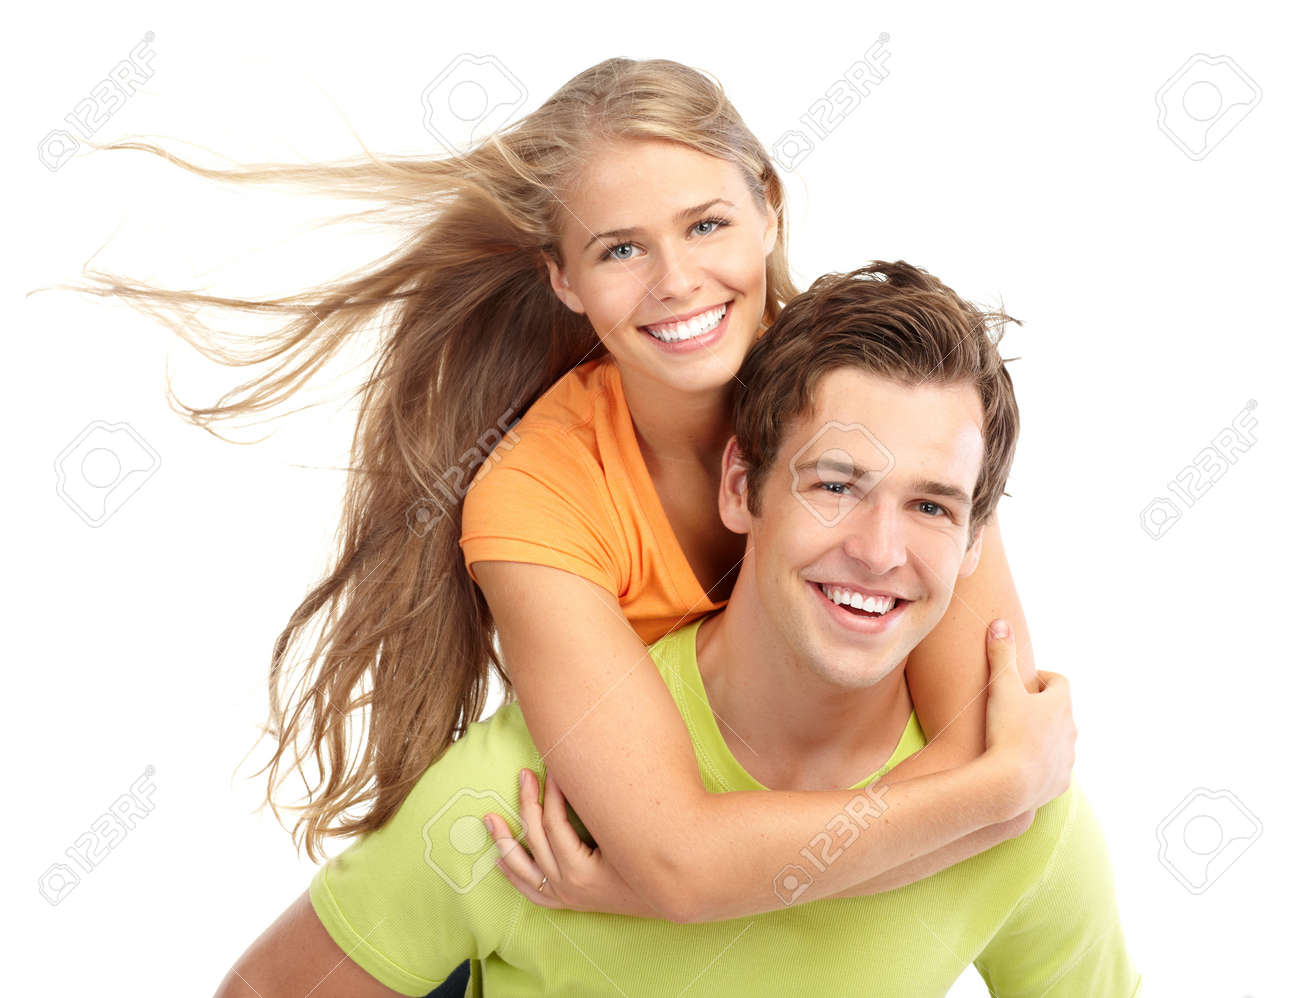 Happy smiling couple in love. Over white background Stock Photo - 7465744